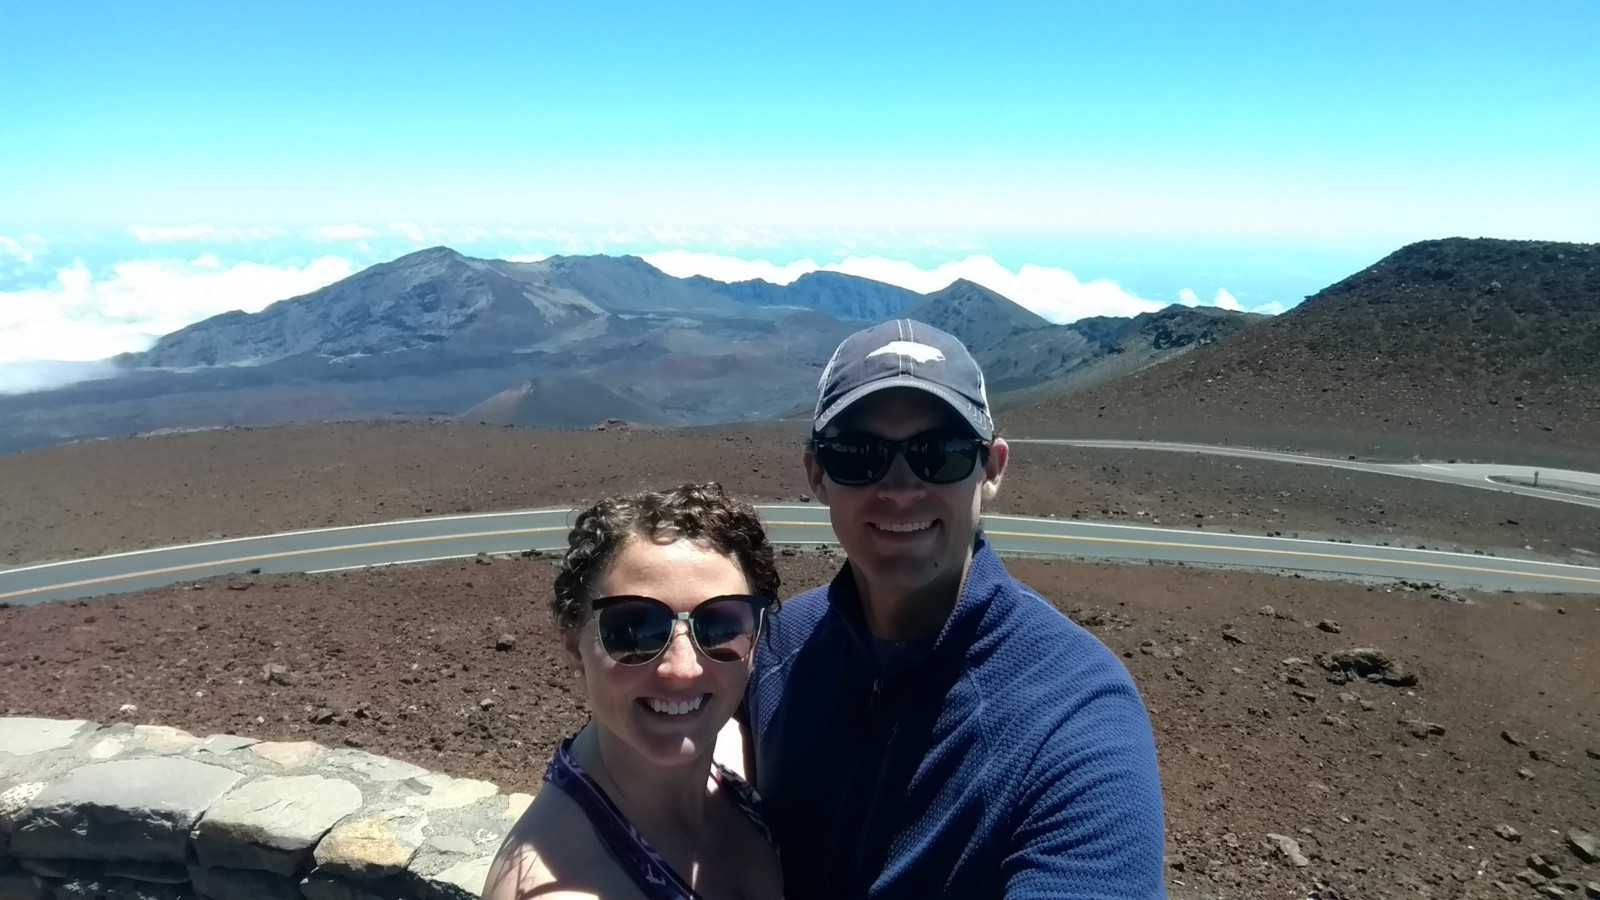 Austin and I on our most recent trip to Maui at Haleakala Crater.